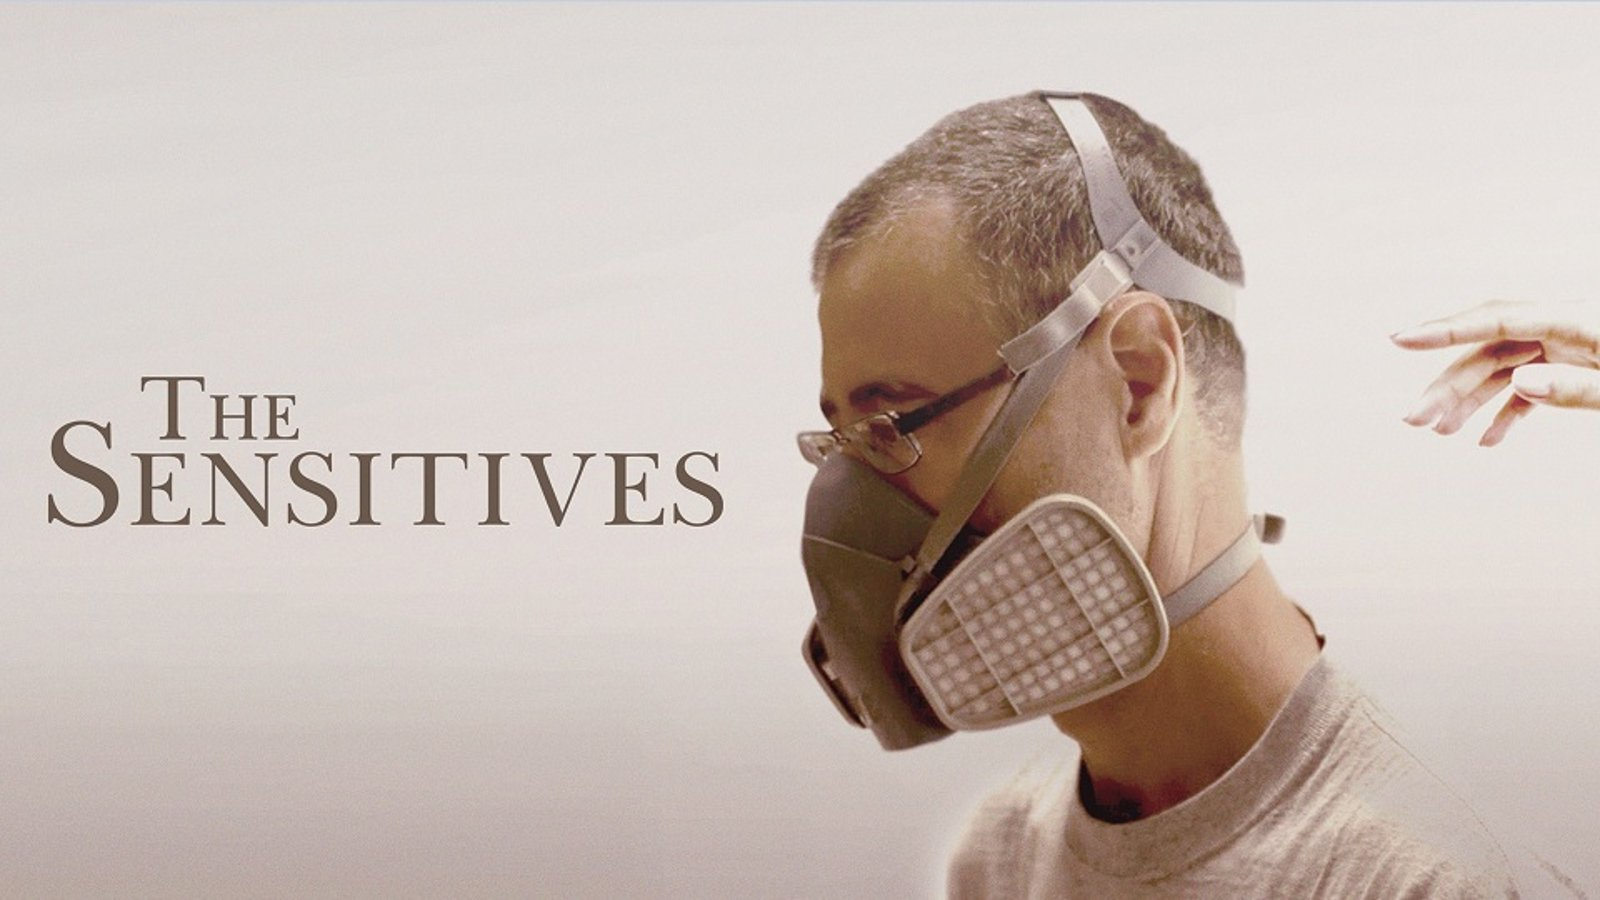 The Sensitives - Living with Environmental Illnesses